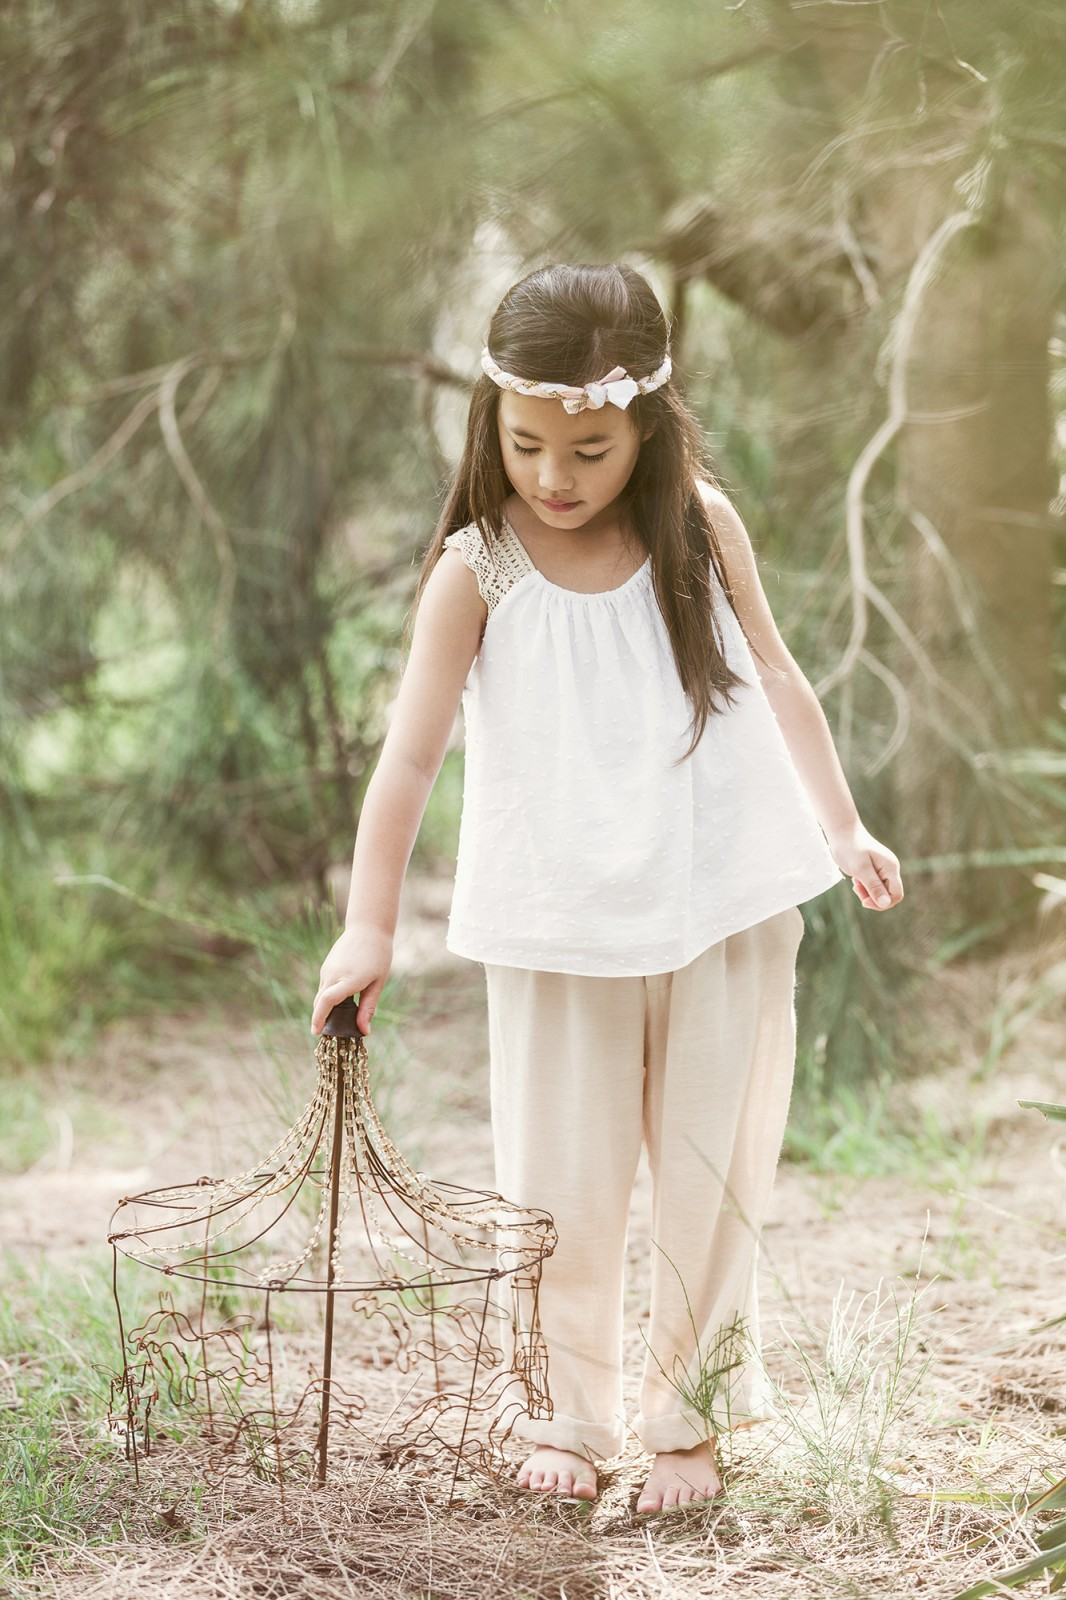 Sydneys leading kids and babies lifestyle and fashion photographer, Michelle Young, photographs the latest kids fashion shoot for international Greek fashion designer Samantha Sotos. Styling and...